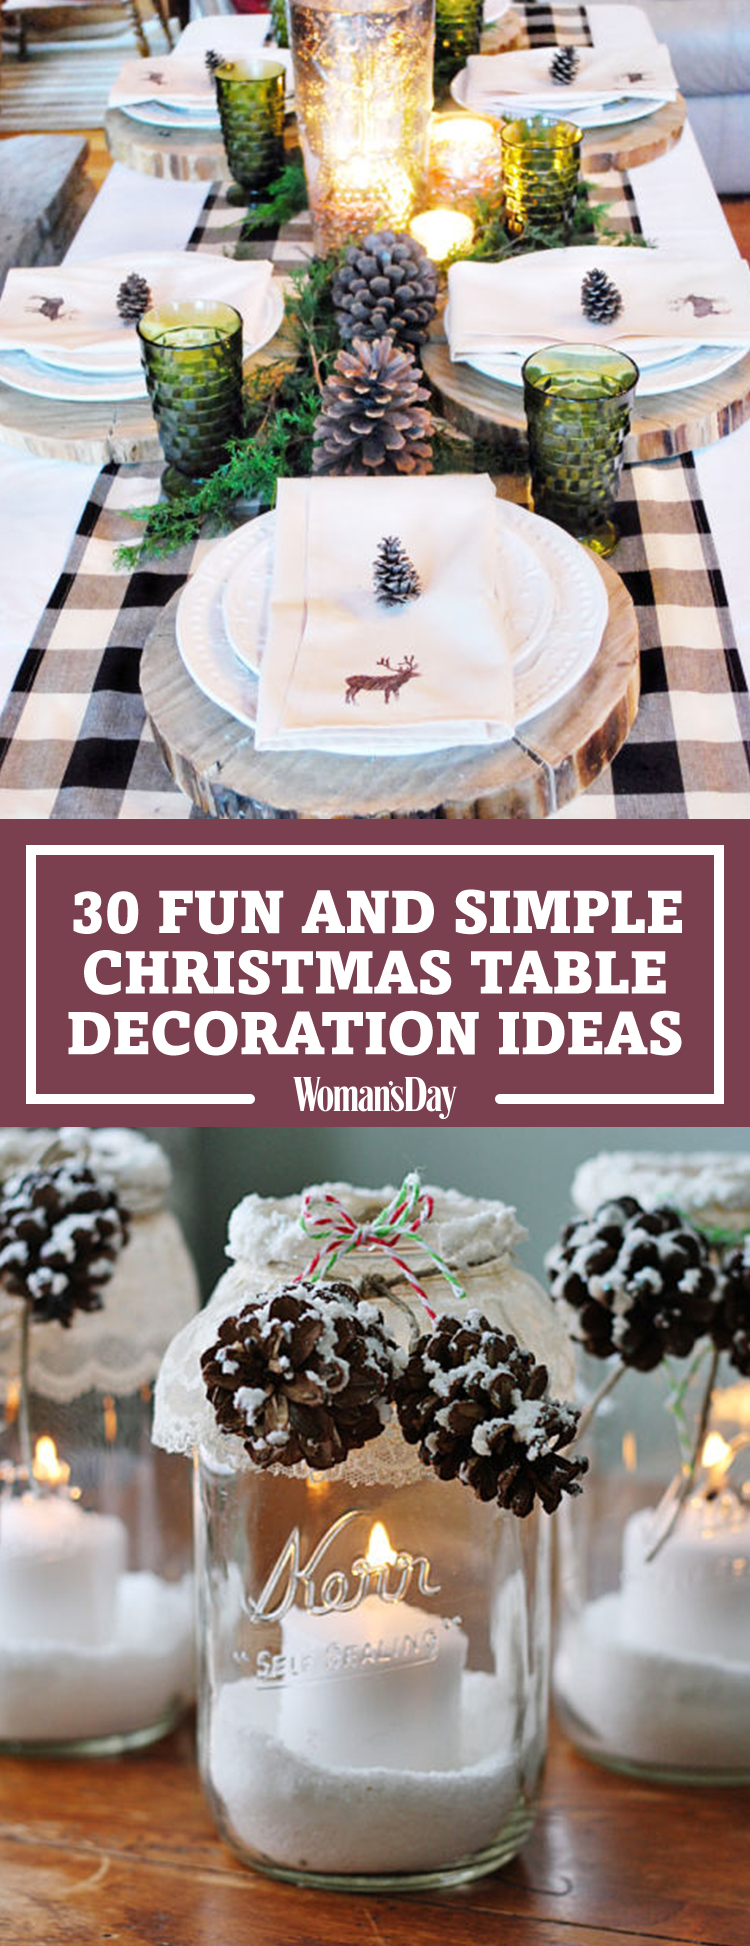 Decorative Ideas For Living Room Small: 32 Christmas Table Decorations & Centerpieces